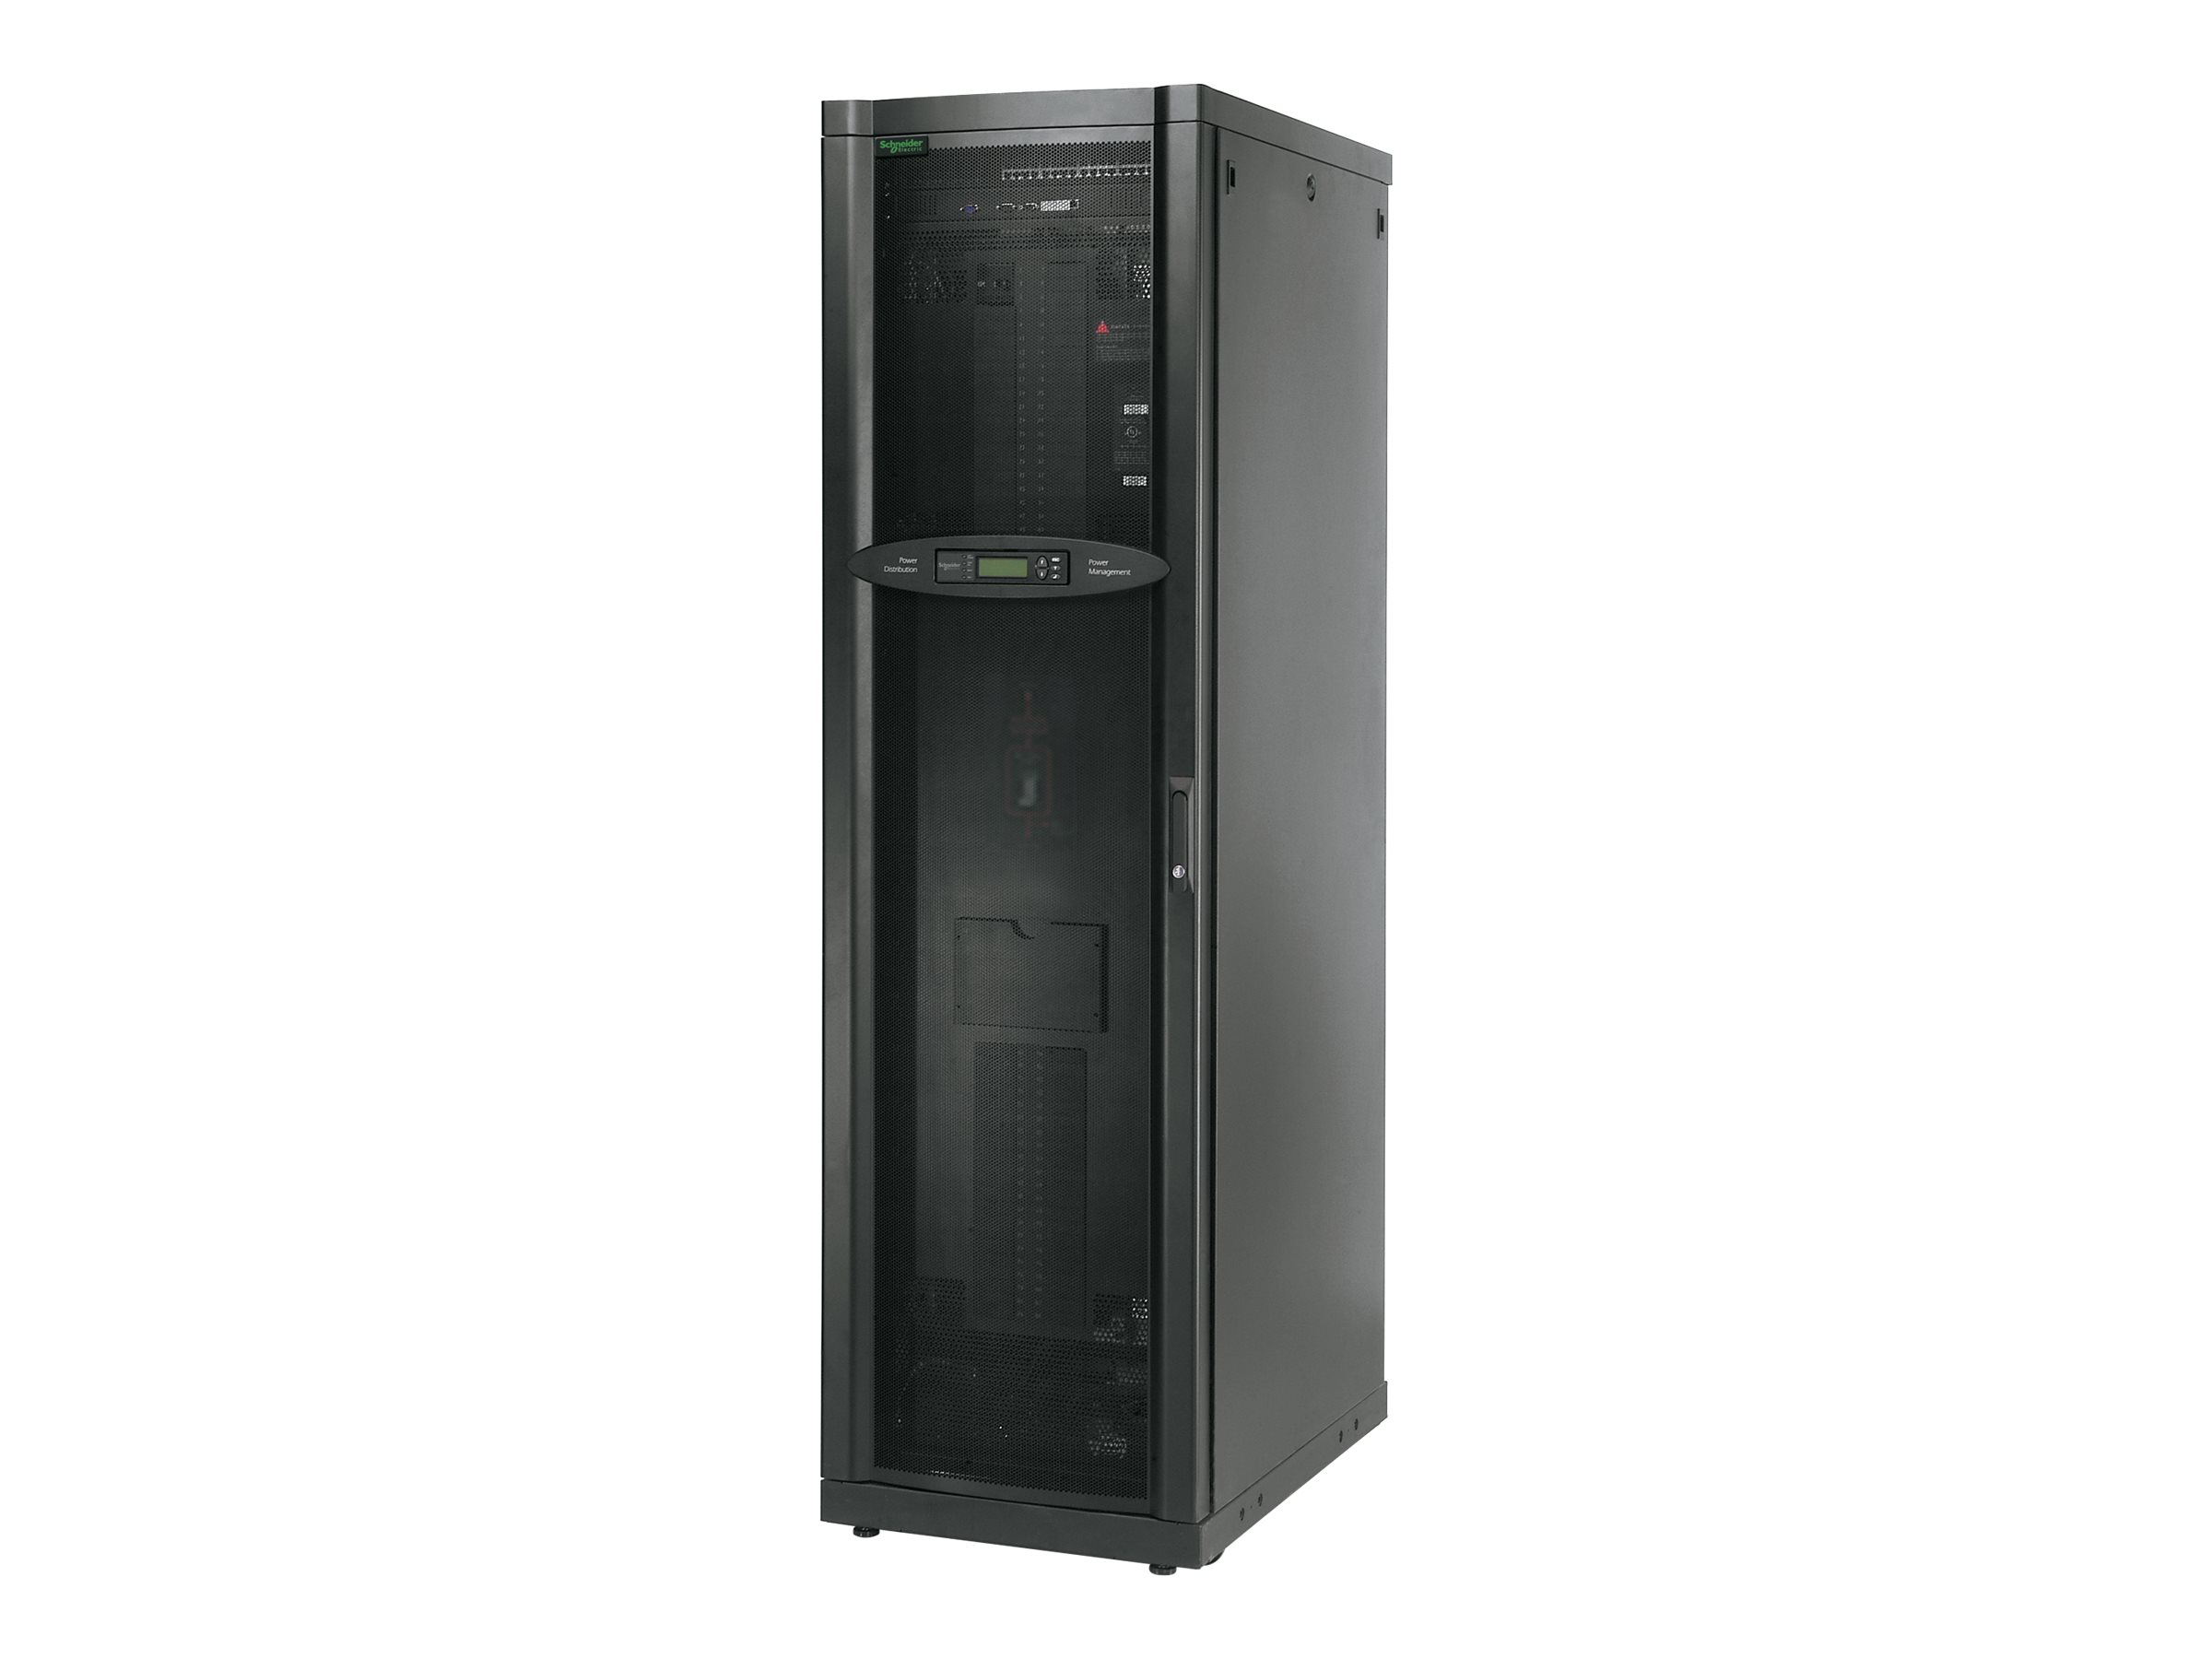 APC InfraStruXure PDU - power distribution cabinet - 60 kW